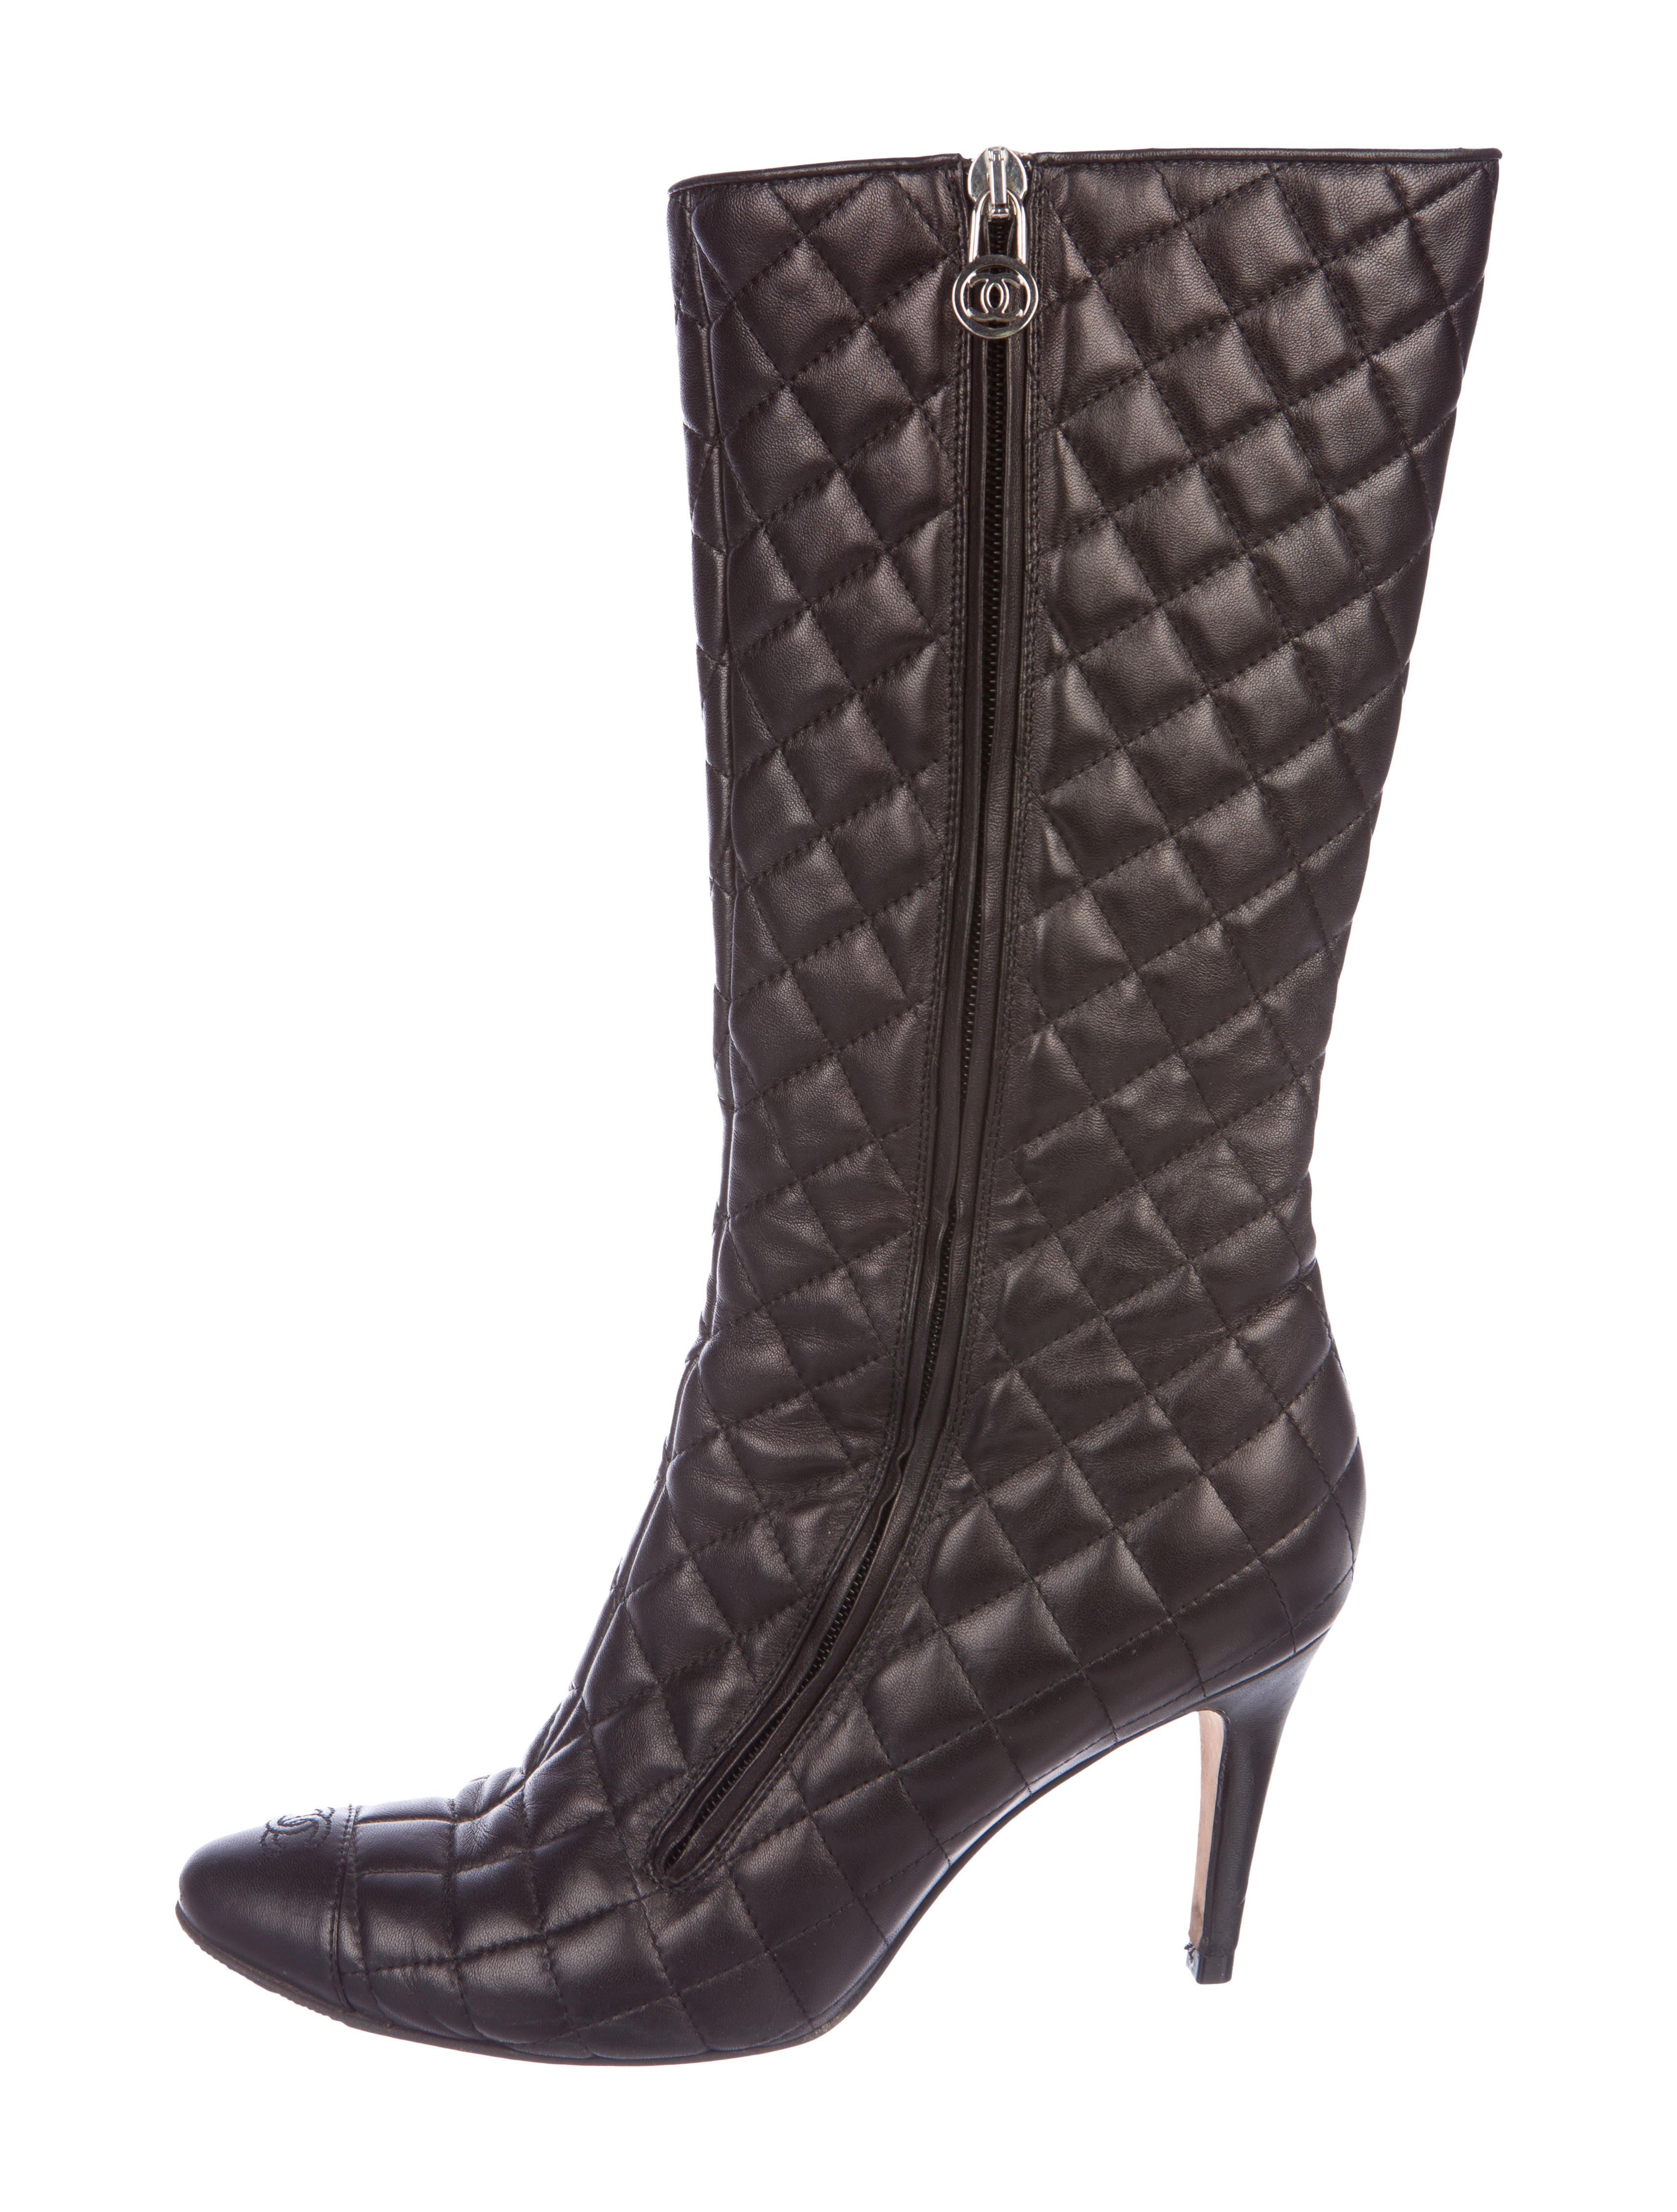 Chanel Cc Quilted Boots Shoes Cha232173 The Realreal